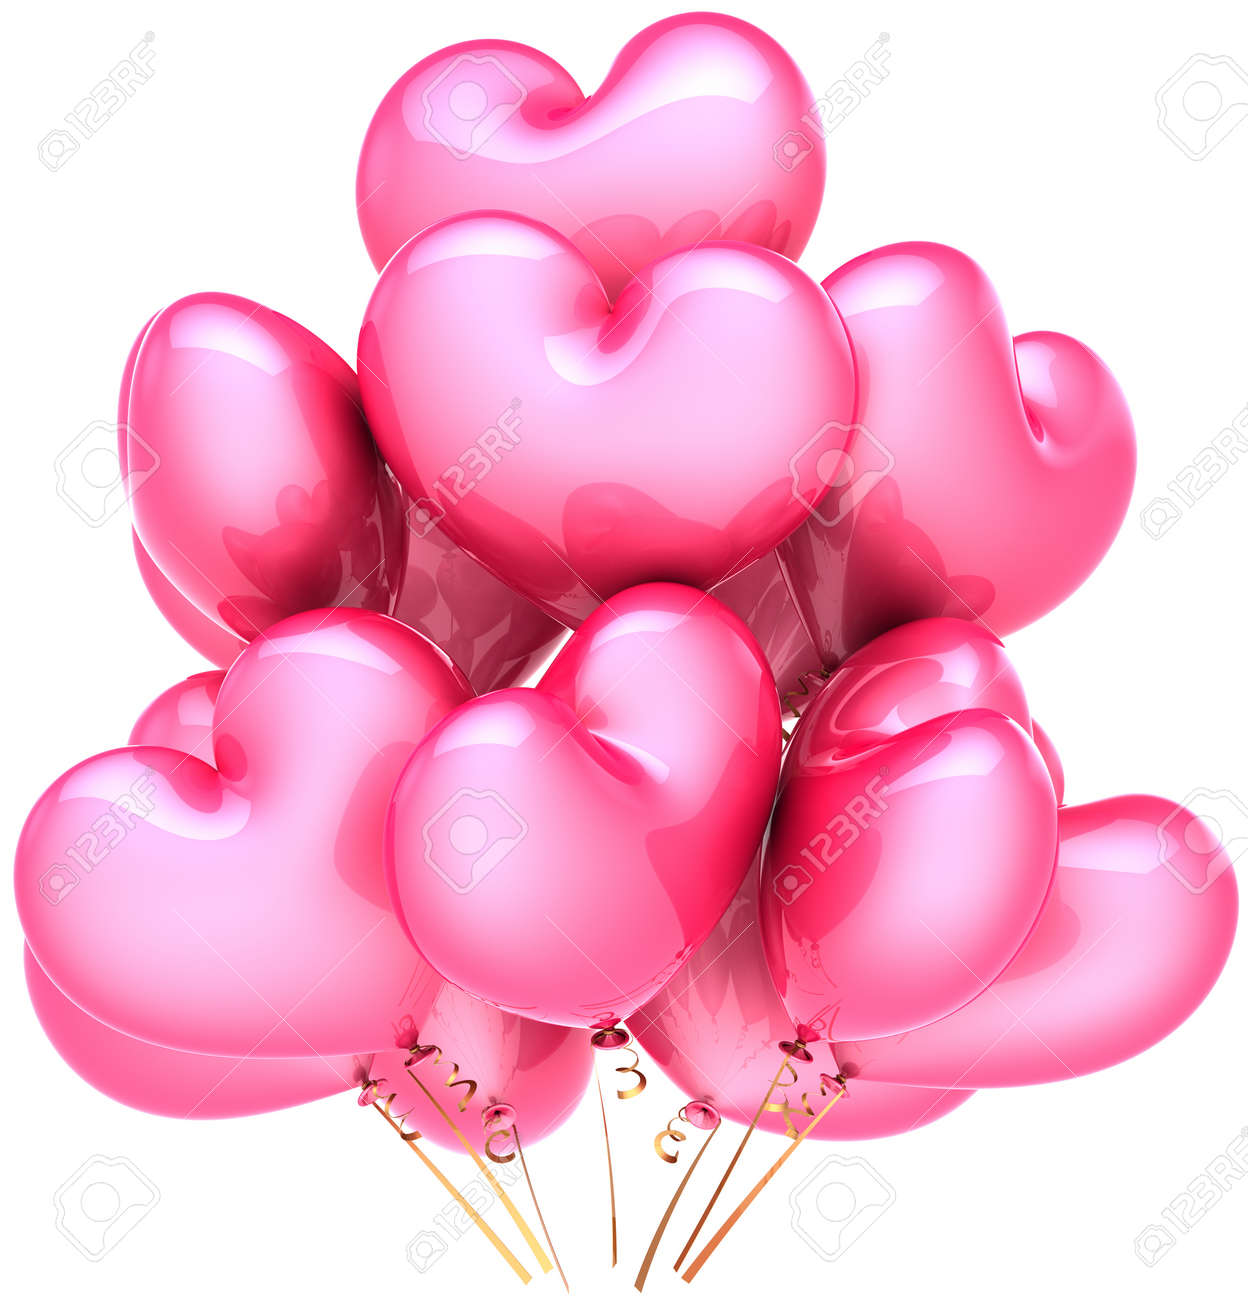 Party Balloons Heart Shaped Colored Pink Love Decoration For Romantic Holiday Happy Birthday Celebration